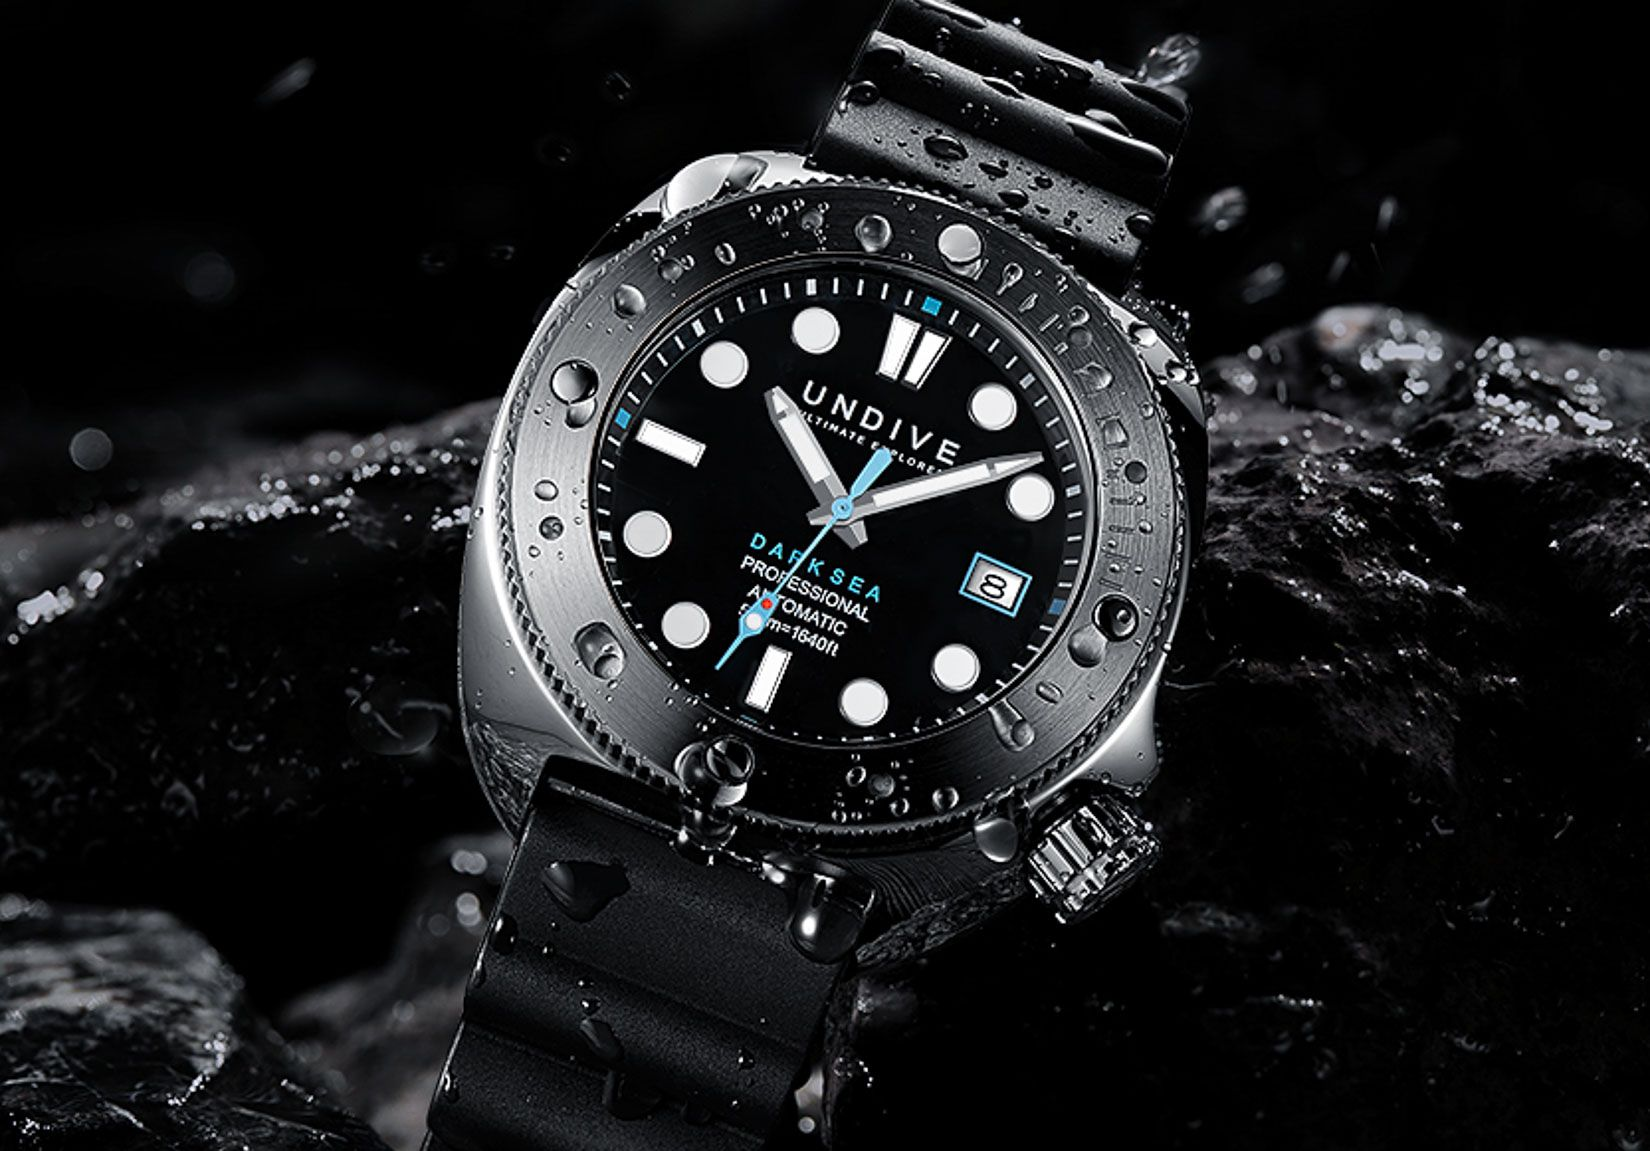 INTRODUCING THE DARK SEA 500M FROM UNDIVE WATCHES